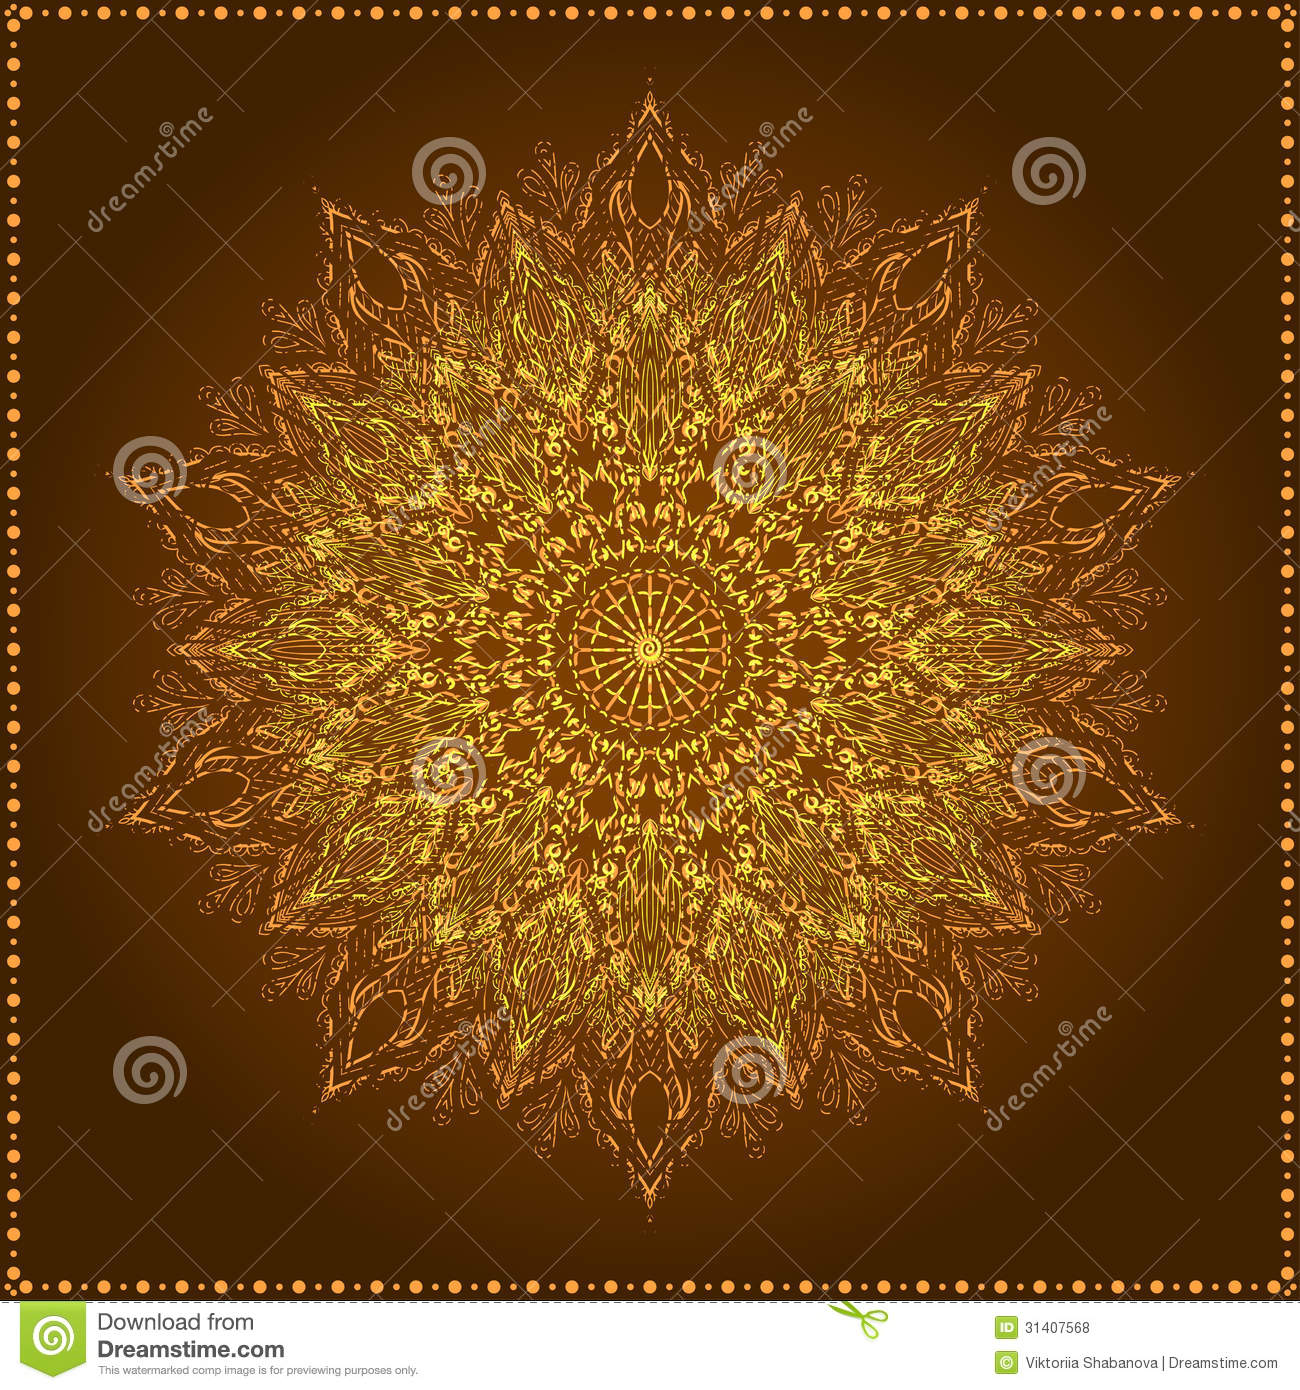 Lotus Flower Design Wall Paper : Mandala beautiful hand drawn flower royalty free stock